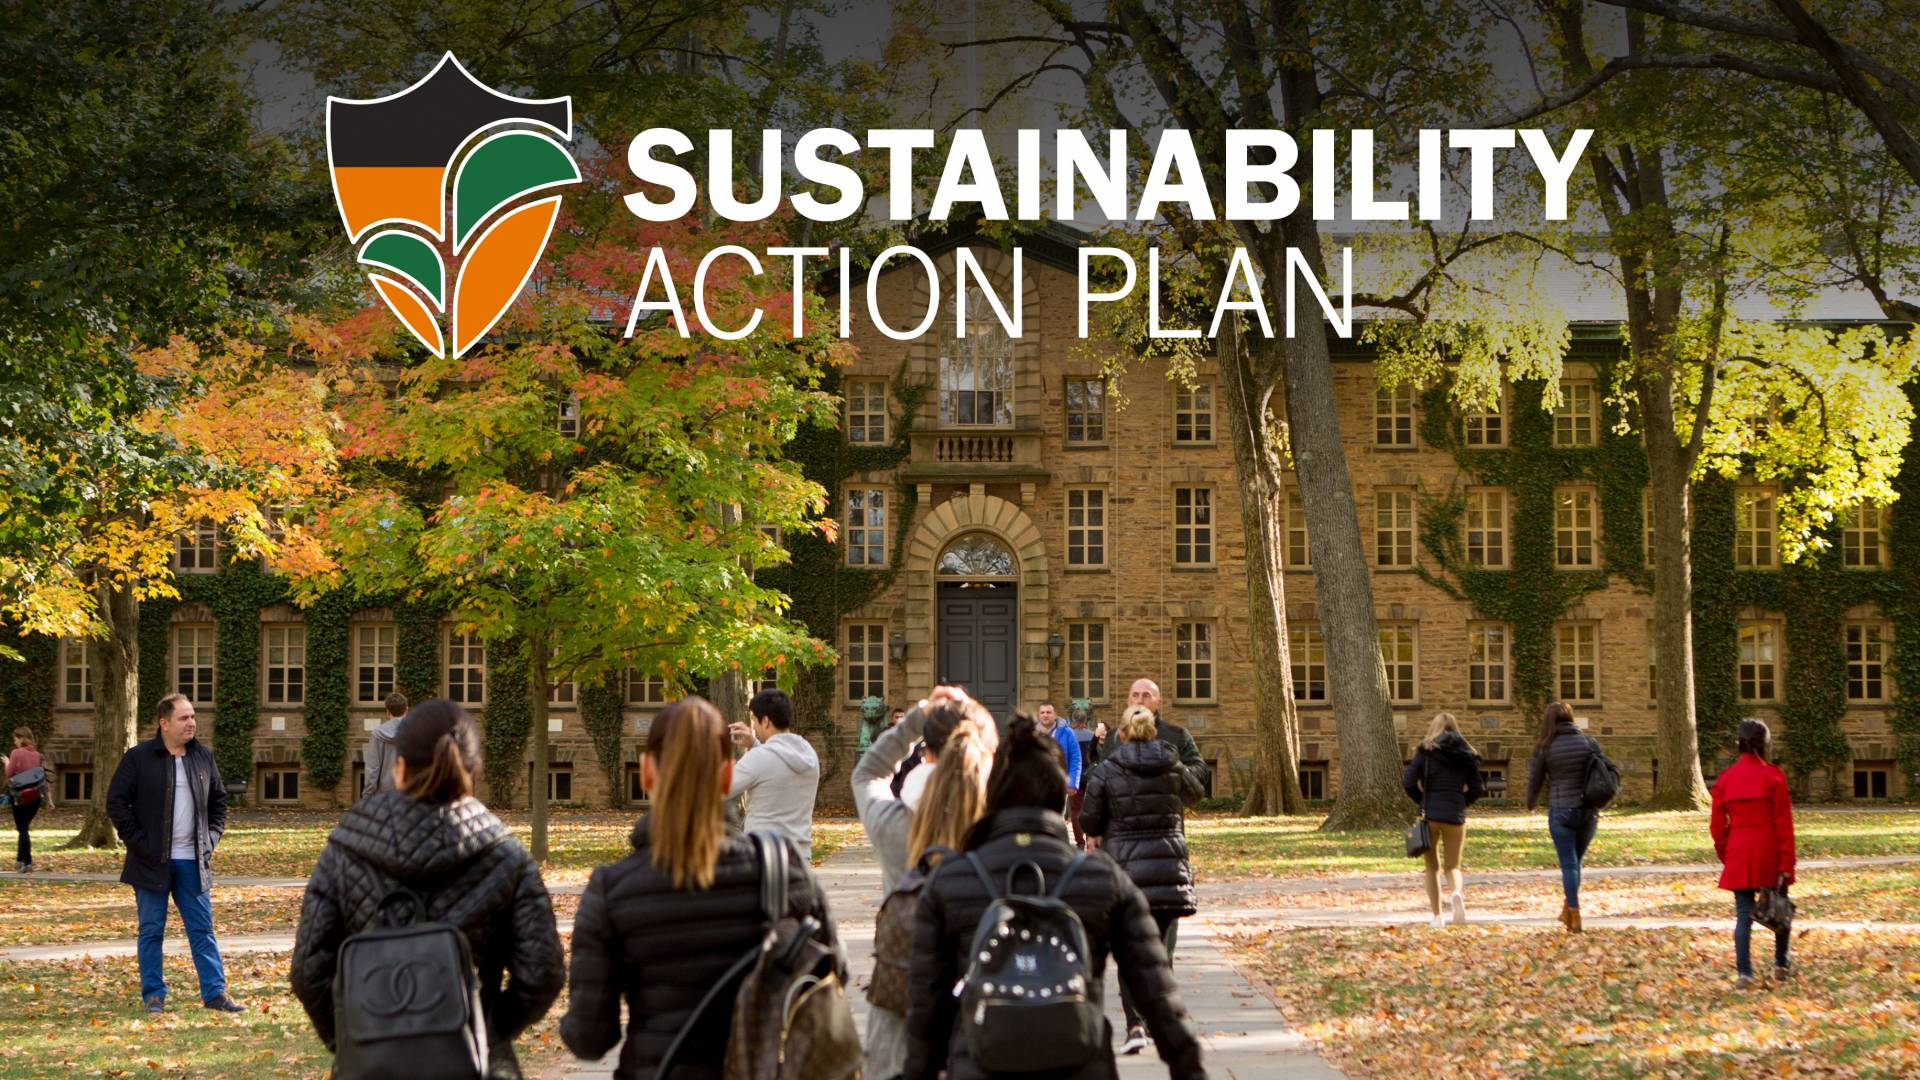 Photo of Nassau Hall with the words Sustainability Action Plan overlaid on it